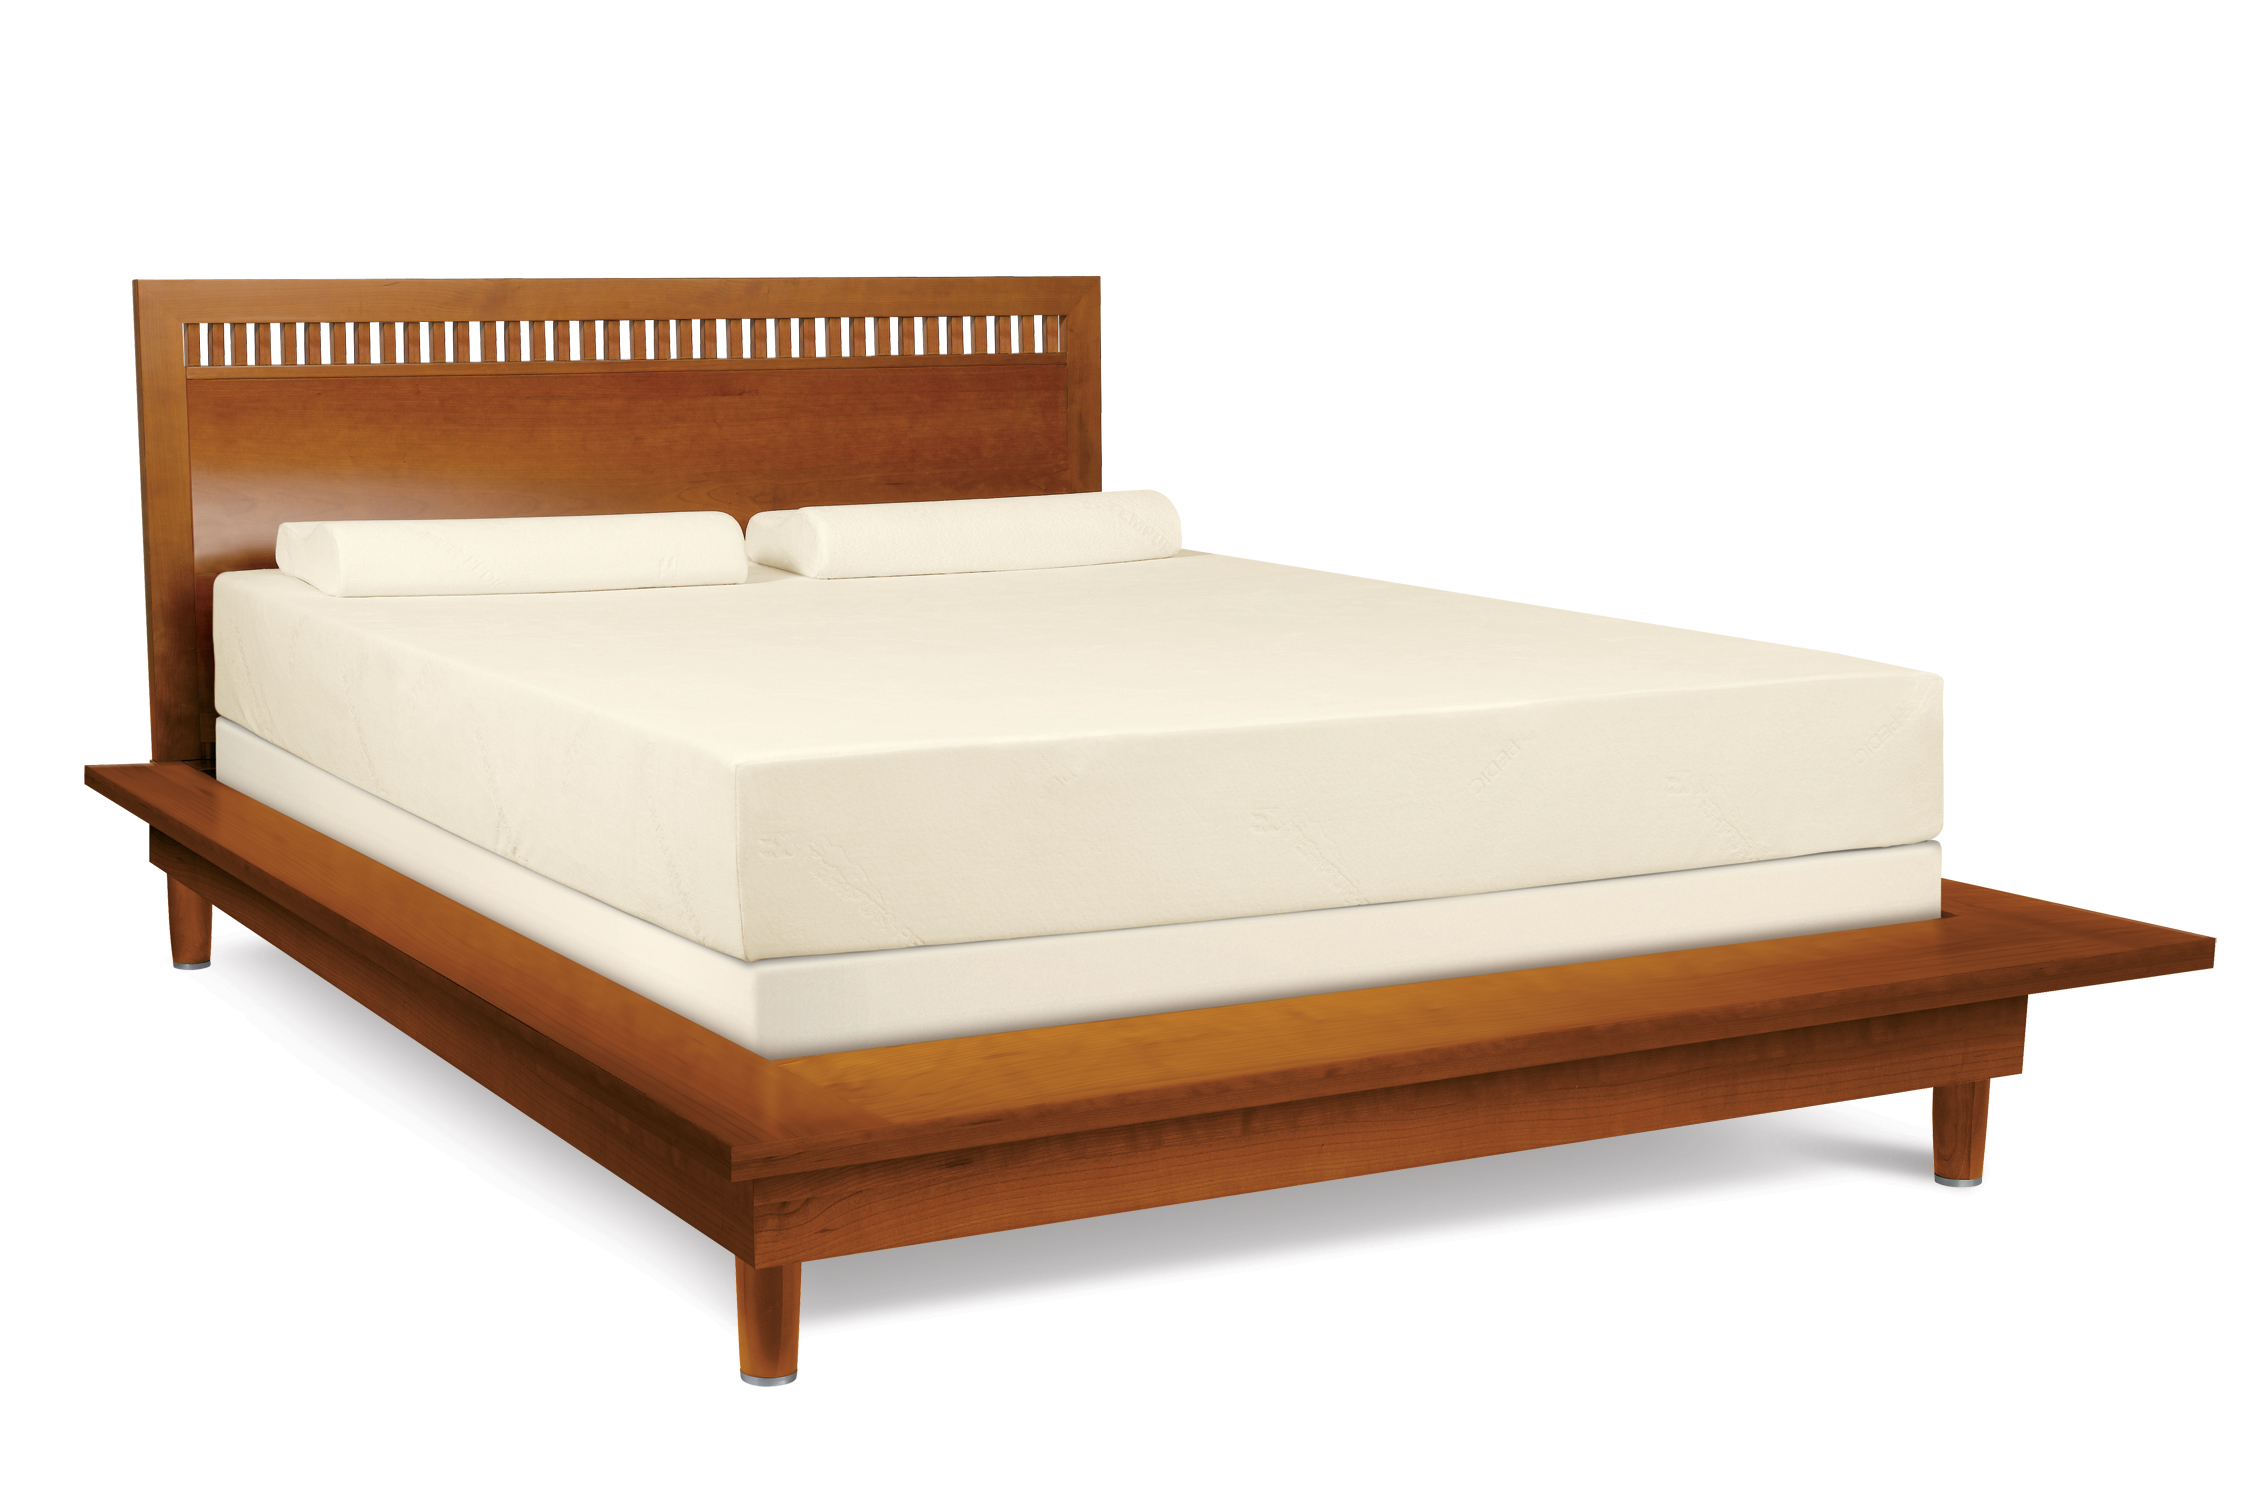 Serta Icomfort Reviews >> The AdvantageBed by Tempur-Pedic® Mattresses